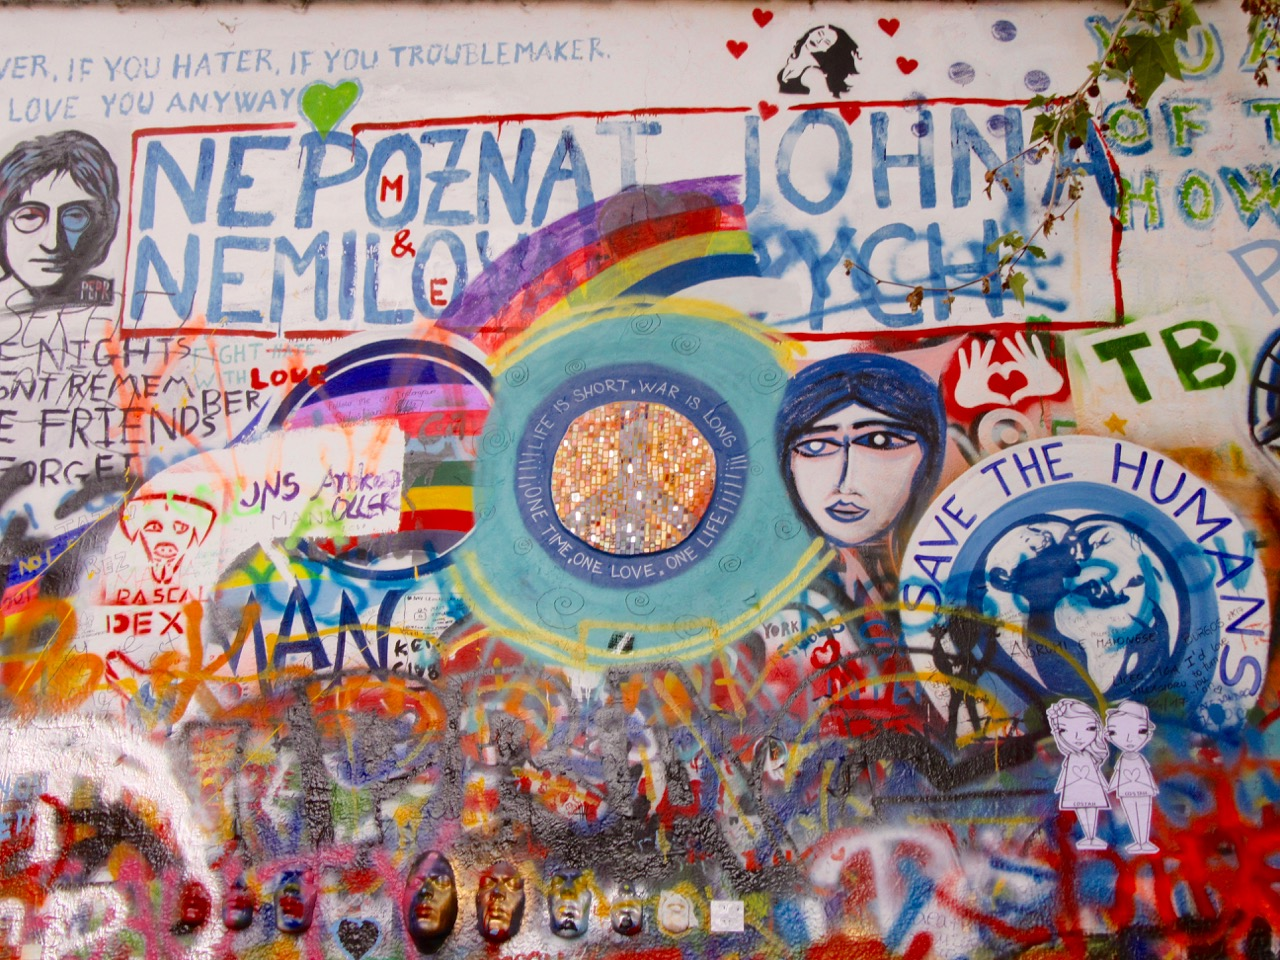 The John Lennon Wall in Prague